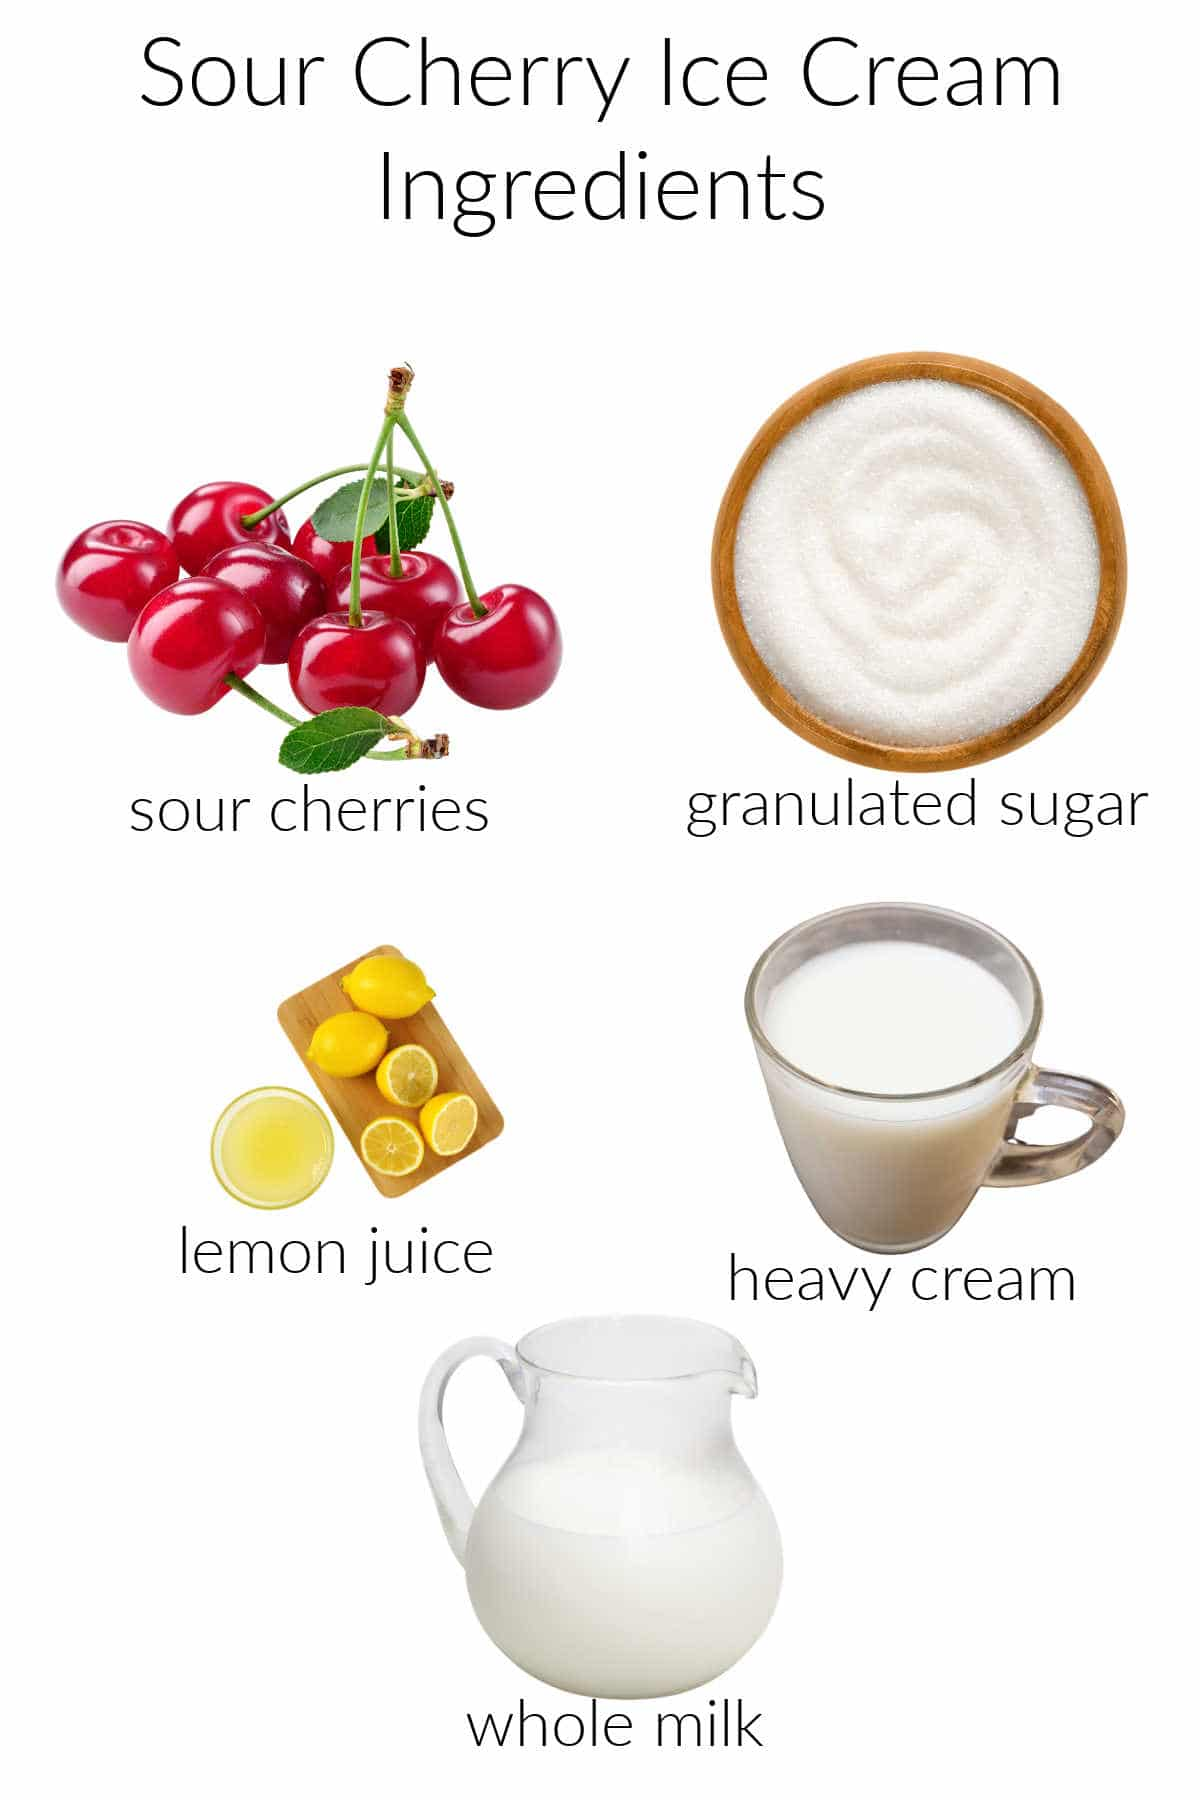 Collage of ingredients for making sour cherry ice cream.